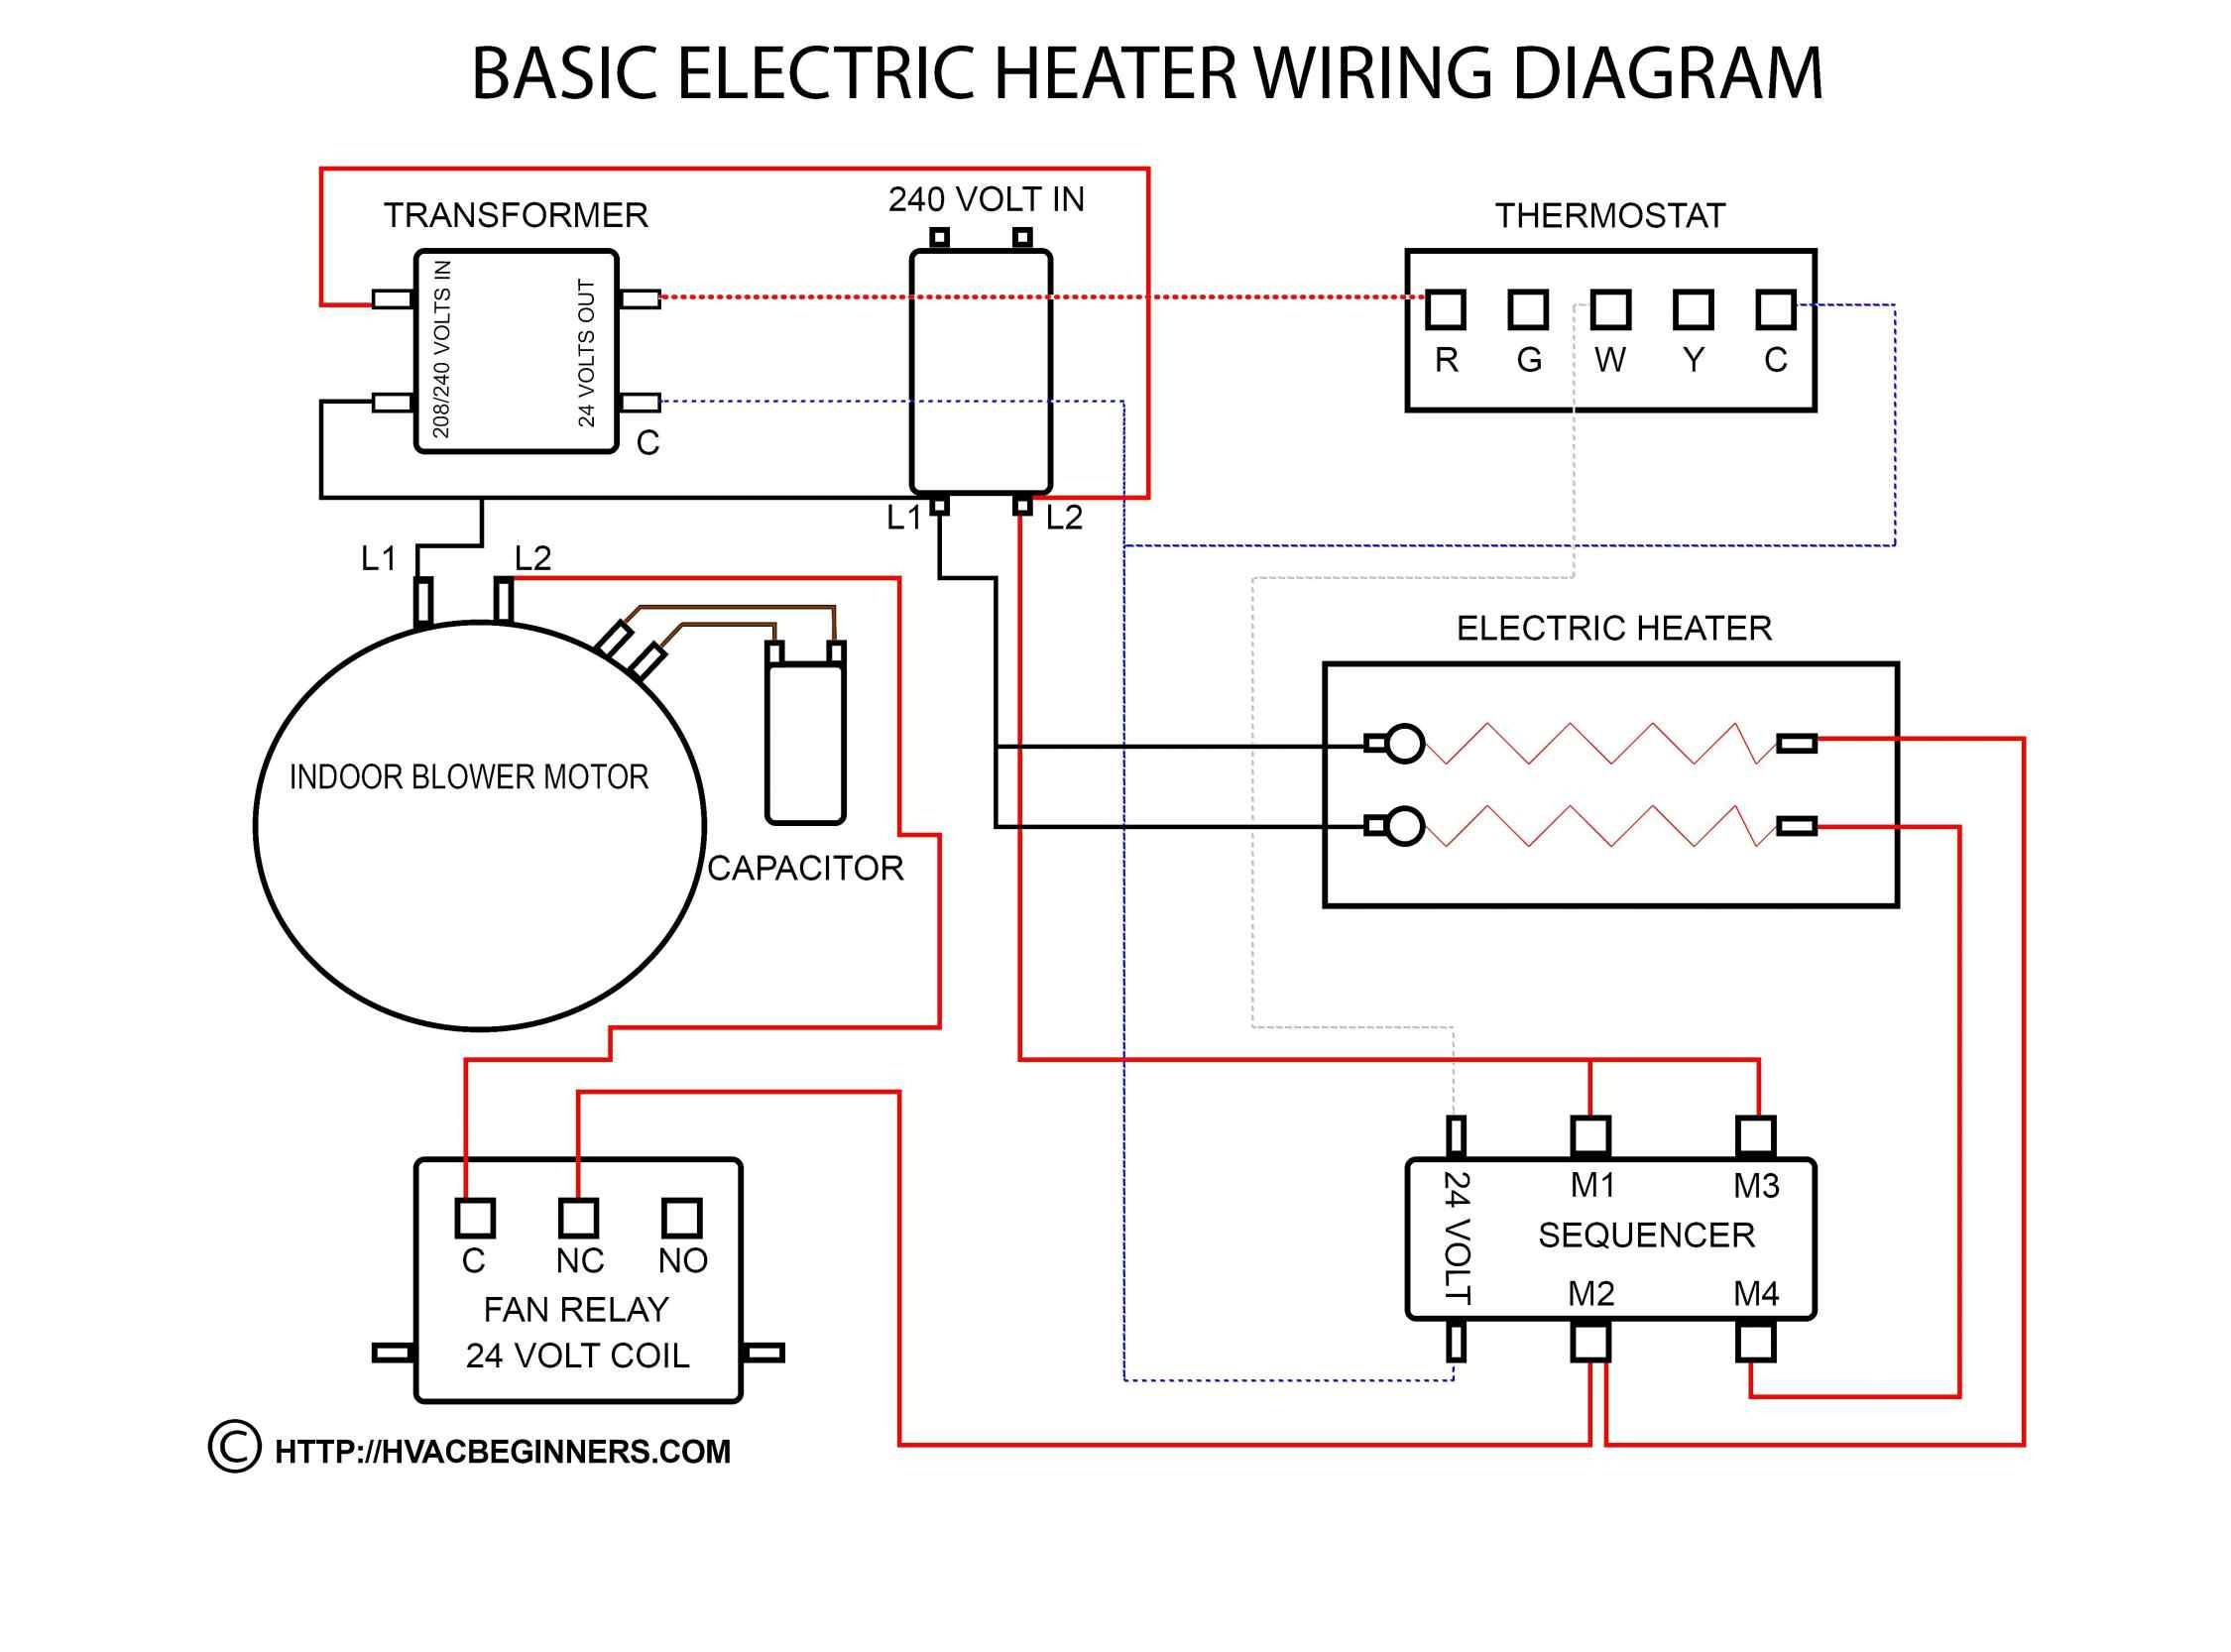 Rv Water Tank Wiring Diagram | Wiring Diagram - Electric Hot Water Heater Wiring Diagram